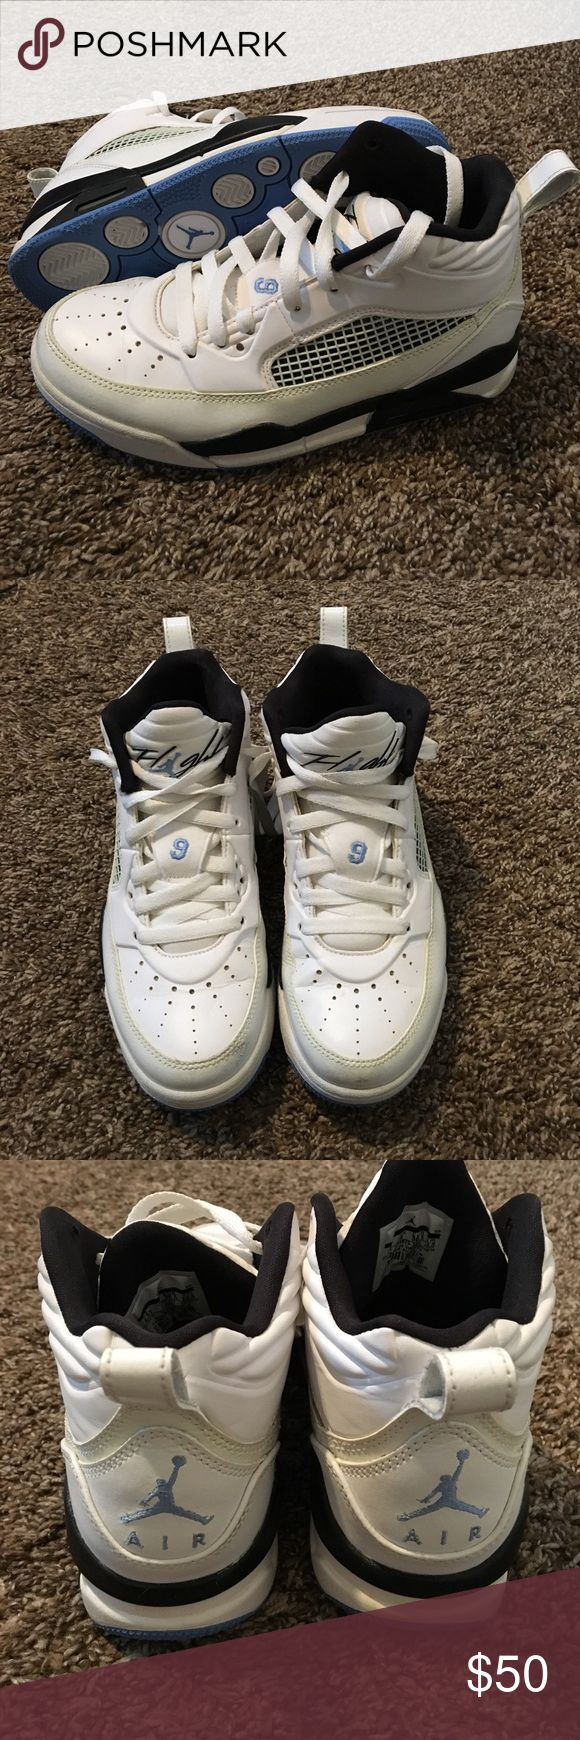 654975-127 Nike Air Jordan Flight, Size 4.5 Y. $50 Good condition. Clean. Worn a hand full of times on stage for dance competition. Air Jordan Shoes Sneakers